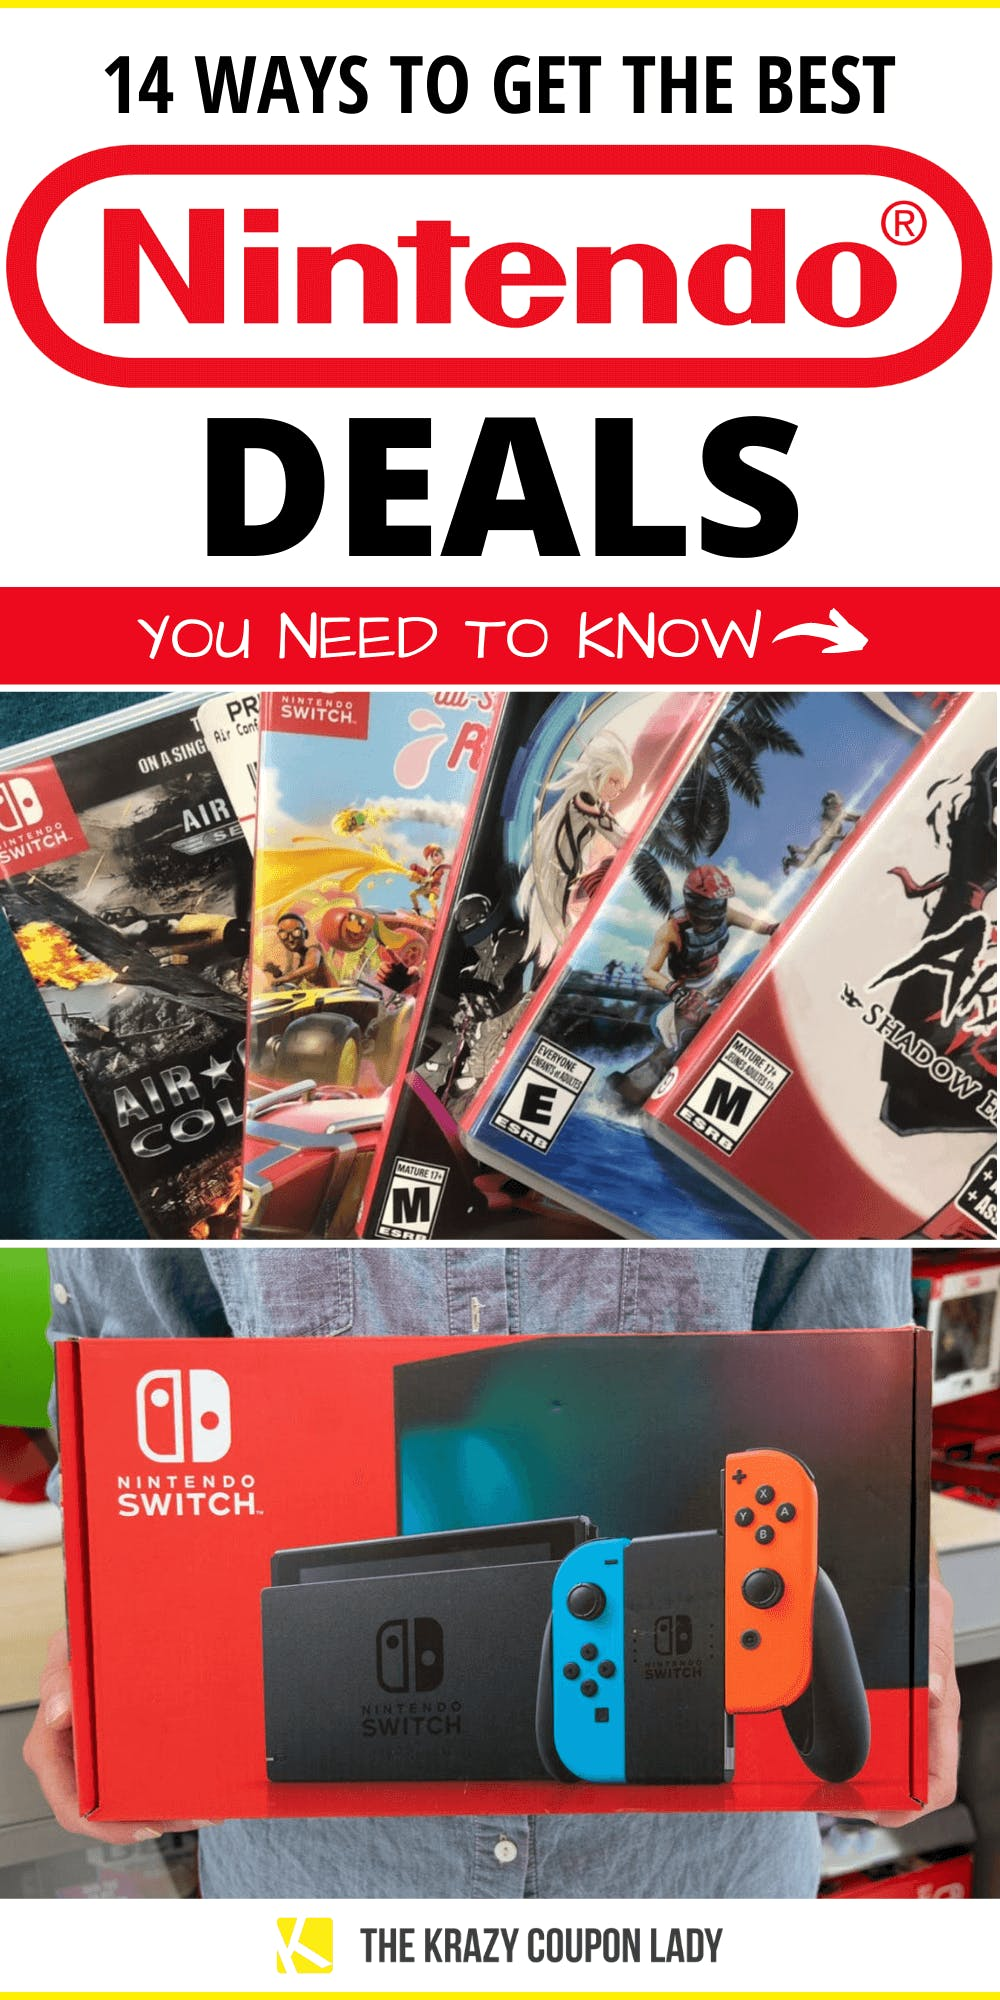 14 Nintendo Deals Your Family Will Love The Krazy Coupon Lady The box states that this. 14 nintendo deals your family will love